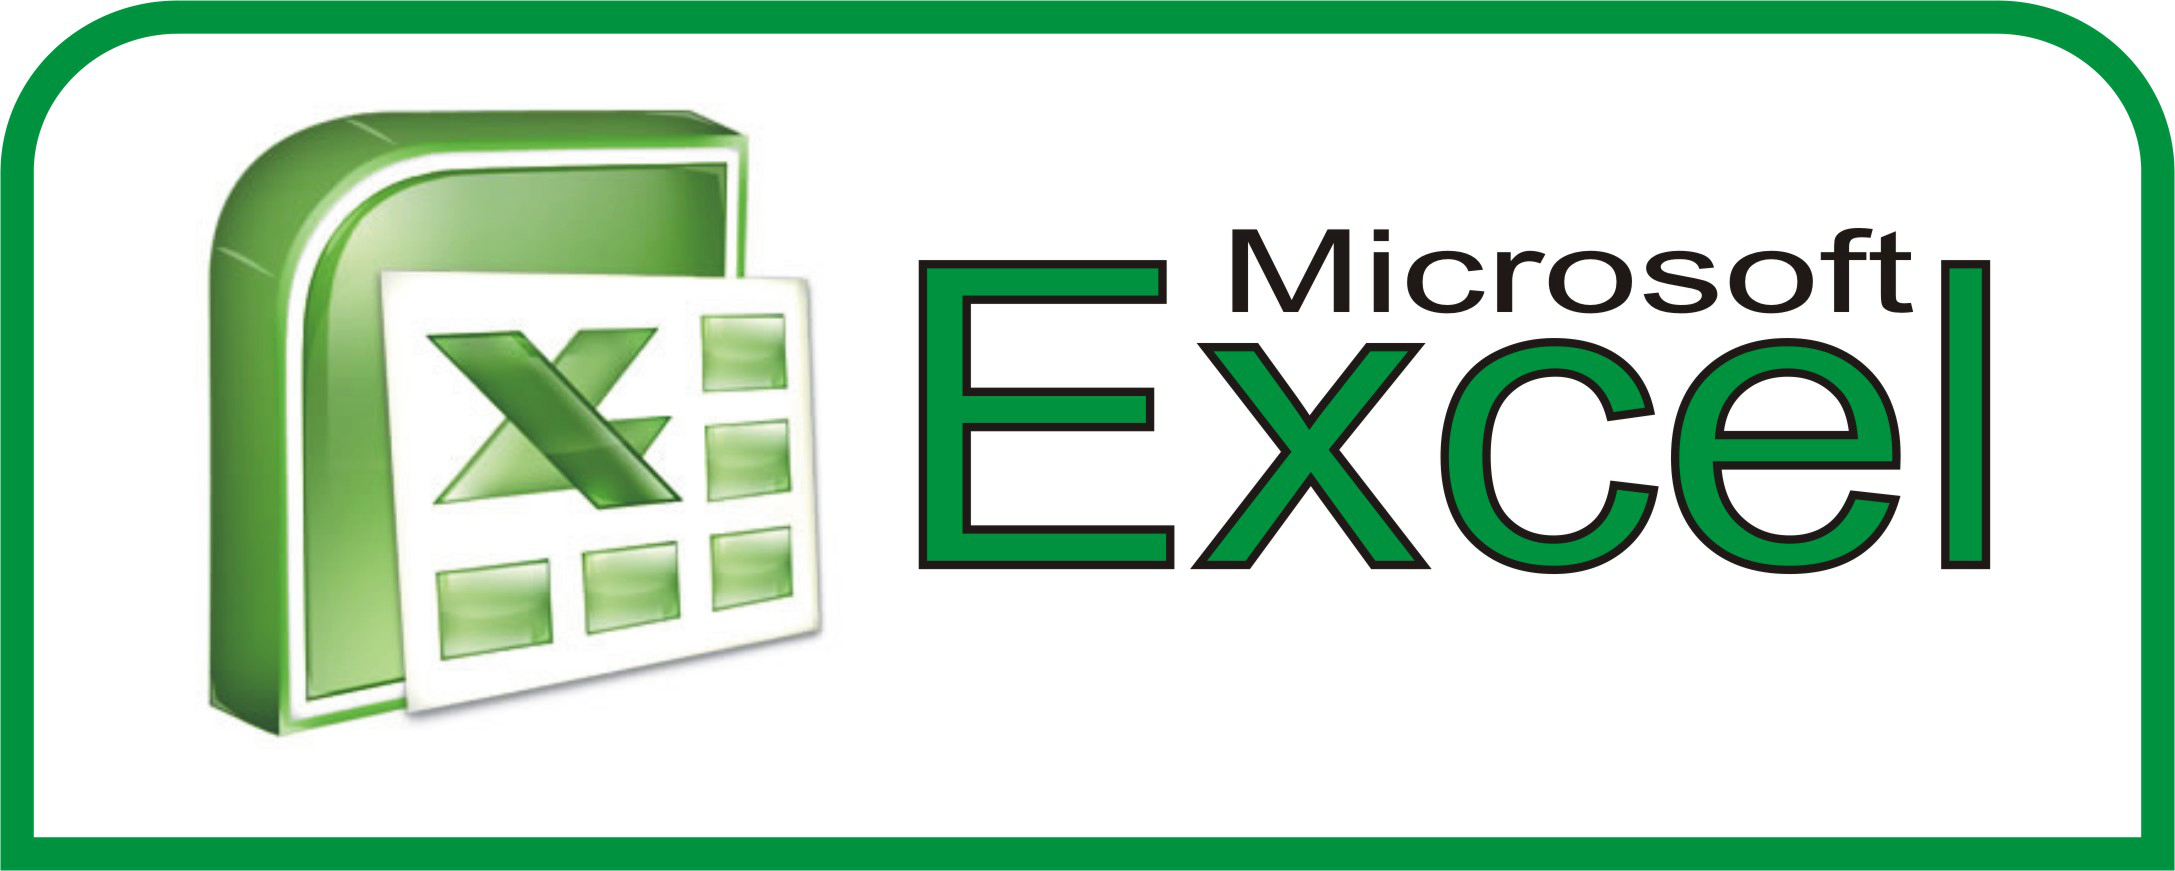 Ediblewildsus  Prepossessing  Excel Shortcuts You Probably Didnt Know About  Techdissected With Exciting Importing Text Files Into Excel Besides Forgot Password Excel Sheet Furthermore Excel Formulas Using With Astonishing Excel Left Command Also Sum Of Time In Excel In Addition Label Excel And Excel Vba Create Worksheet As Well As Excel Test For Value Additionally Excel Bank Reconciliation Template From Techdissectedcom With Ediblewildsus  Exciting  Excel Shortcuts You Probably Didnt Know About  Techdissected With Astonishing Importing Text Files Into Excel Besides Forgot Password Excel Sheet Furthermore Excel Formulas Using And Prepossessing Excel Left Command Also Sum Of Time In Excel In Addition Label Excel From Techdissectedcom